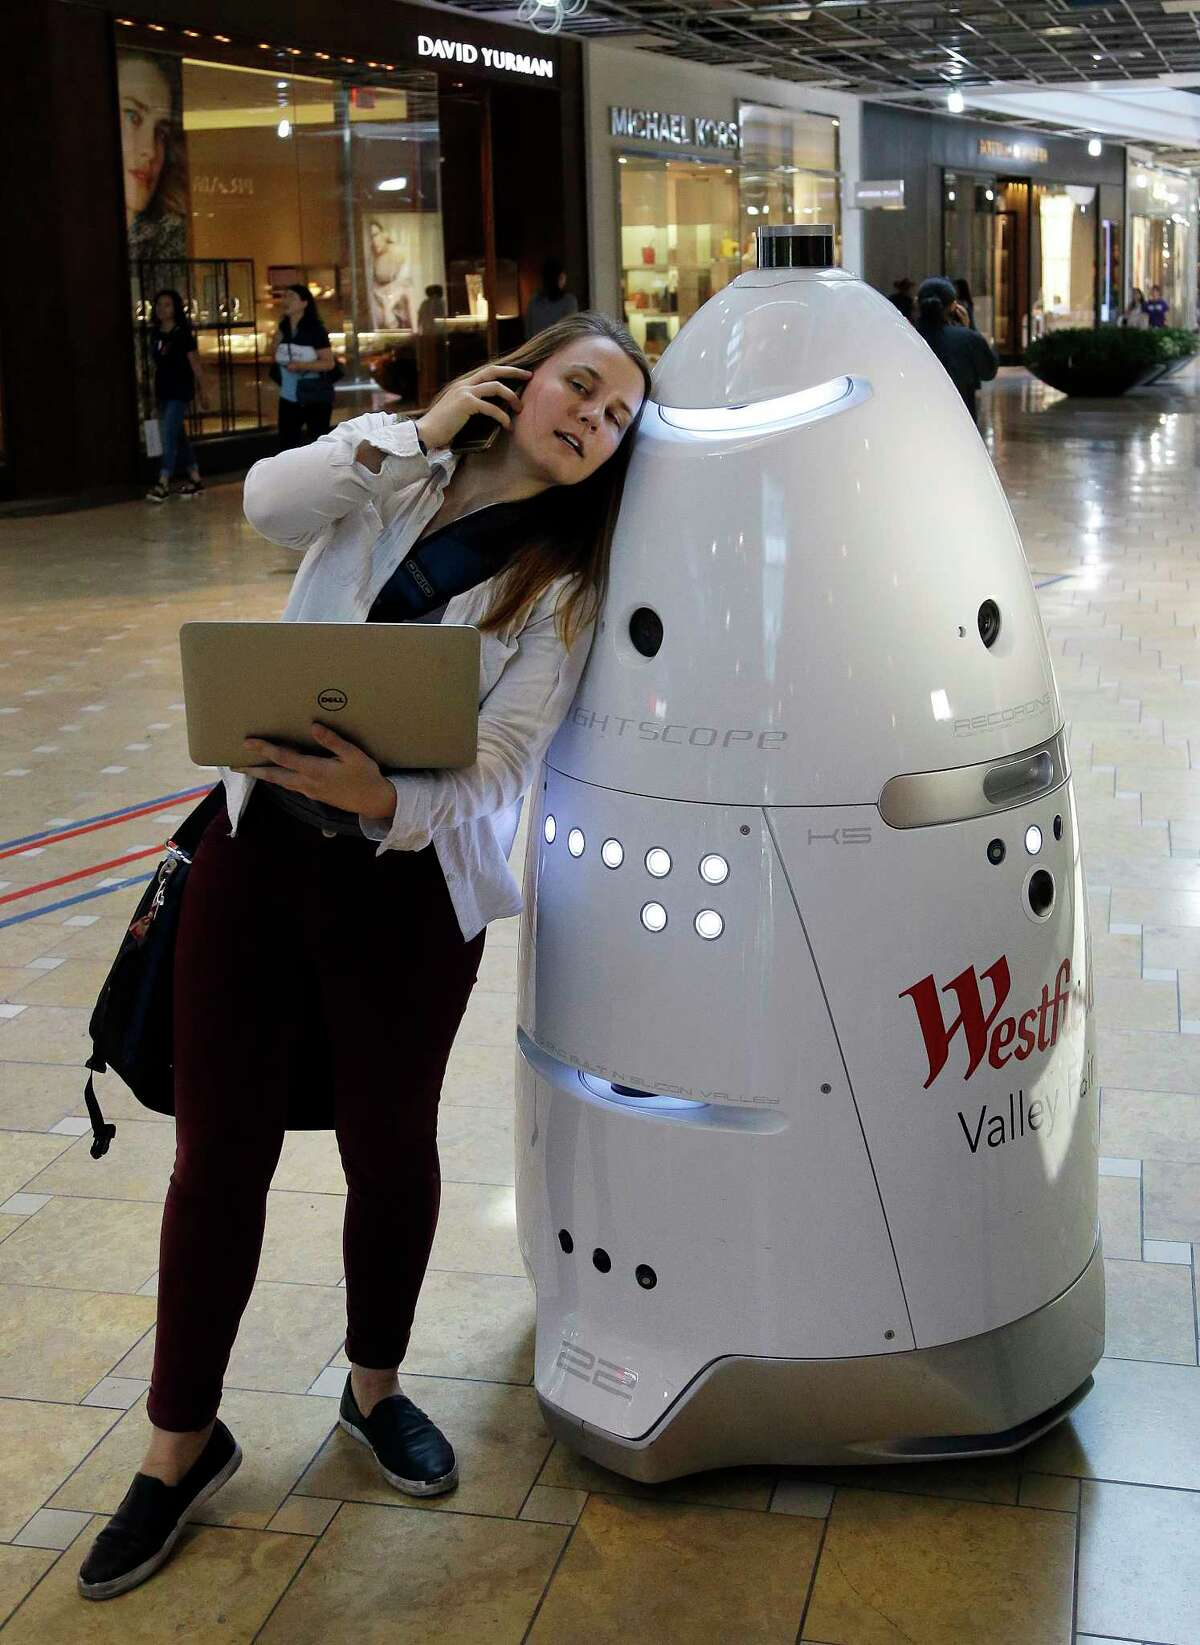 ADVANCE FOR RELEASE MONDAY, SEPT. 4, 2017, AT 12:01 A.M. EDT - In this Monday, June 26, 2017, photo, Knightscope Inc. deployment engineer Gale Curry field checks a K5 security robot at Westfield Valley Fair shopping center in San Jose, Calif. A San Francisco supervisor is calling for a tax on robots that automate jobs and put people out of work, saying the money should be used to help the unemployed. (AP Photo/Ben Margot) ORG XMIT: NYBZ602